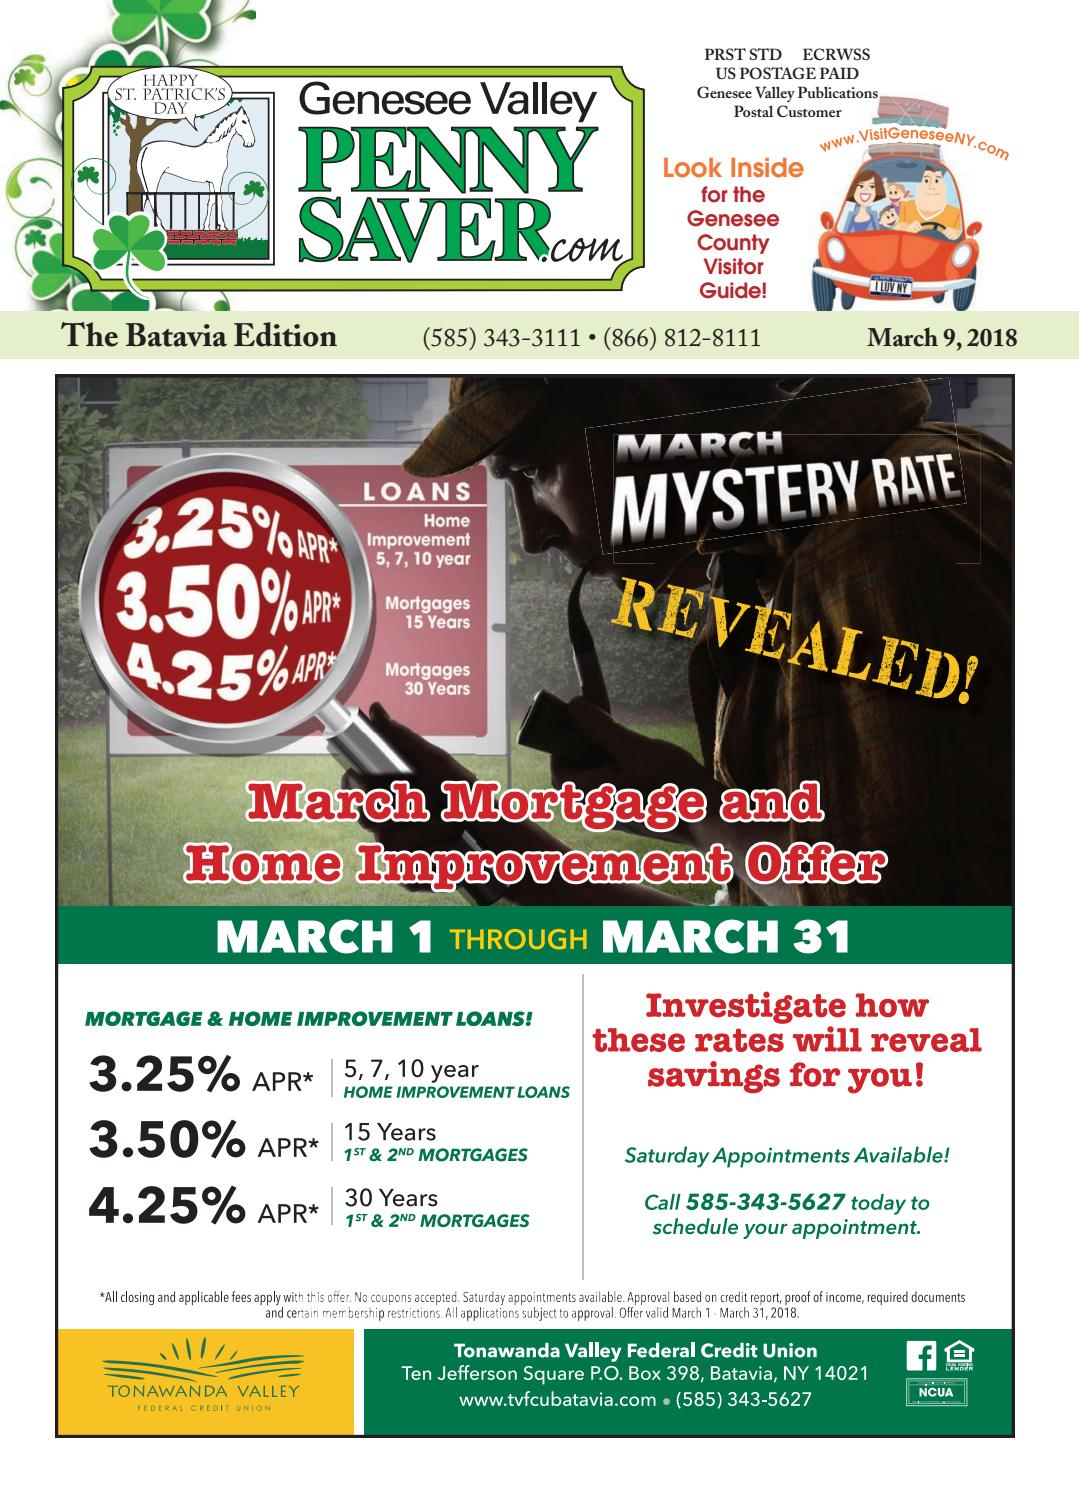 Batavia Edition - The Genesee Valley Penny Saver 3/9/18 by